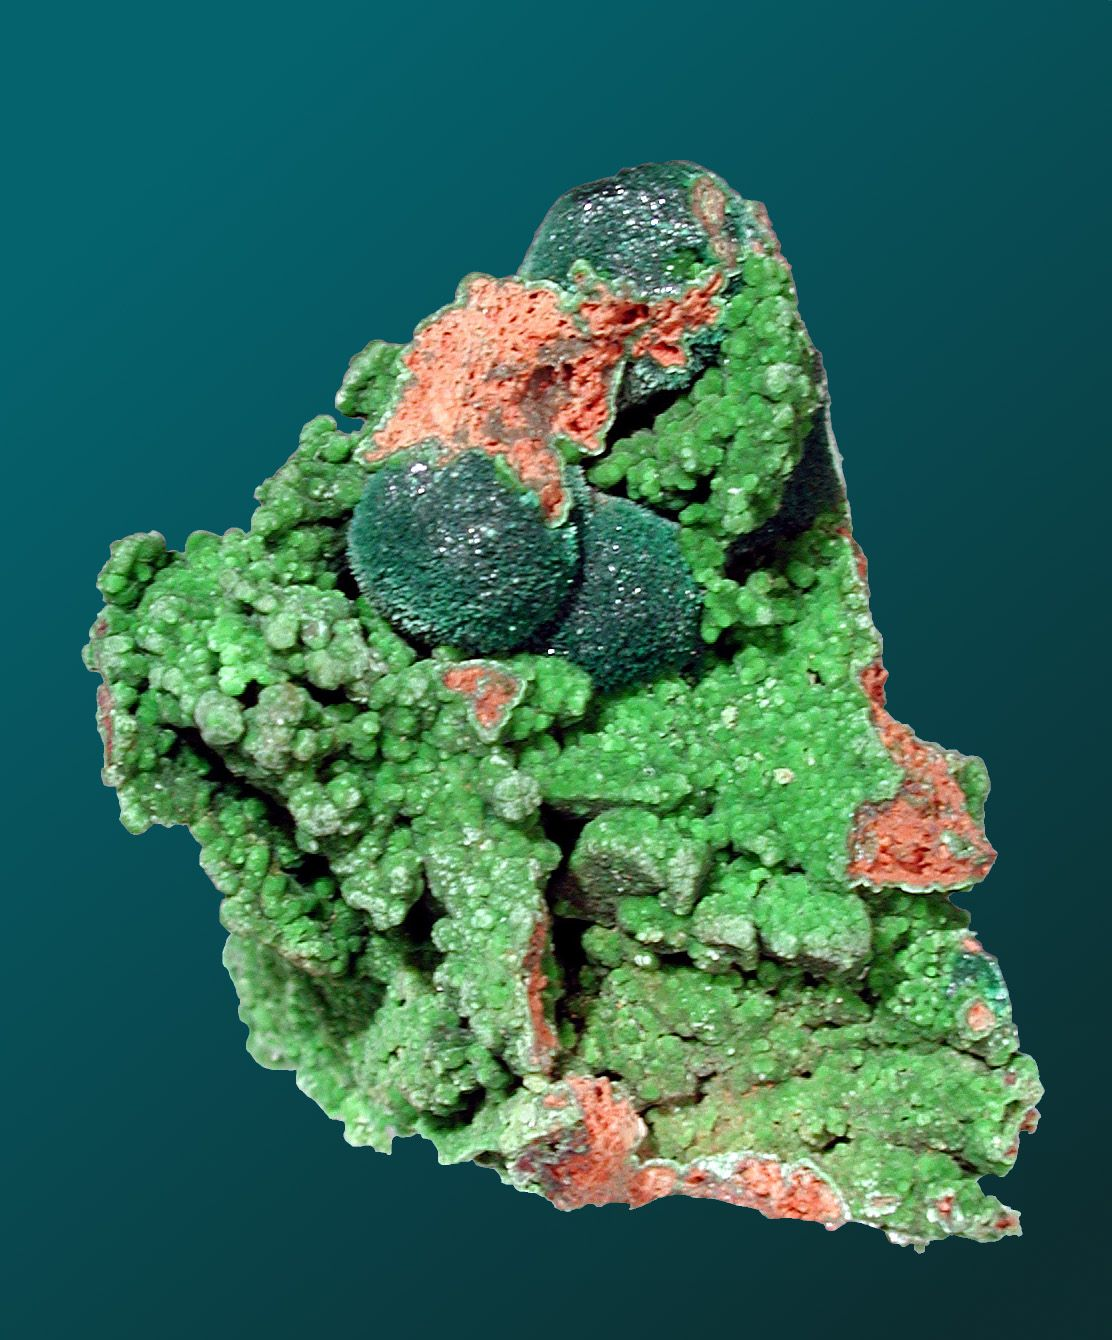 Rosasite from Tsumeb, Namibia